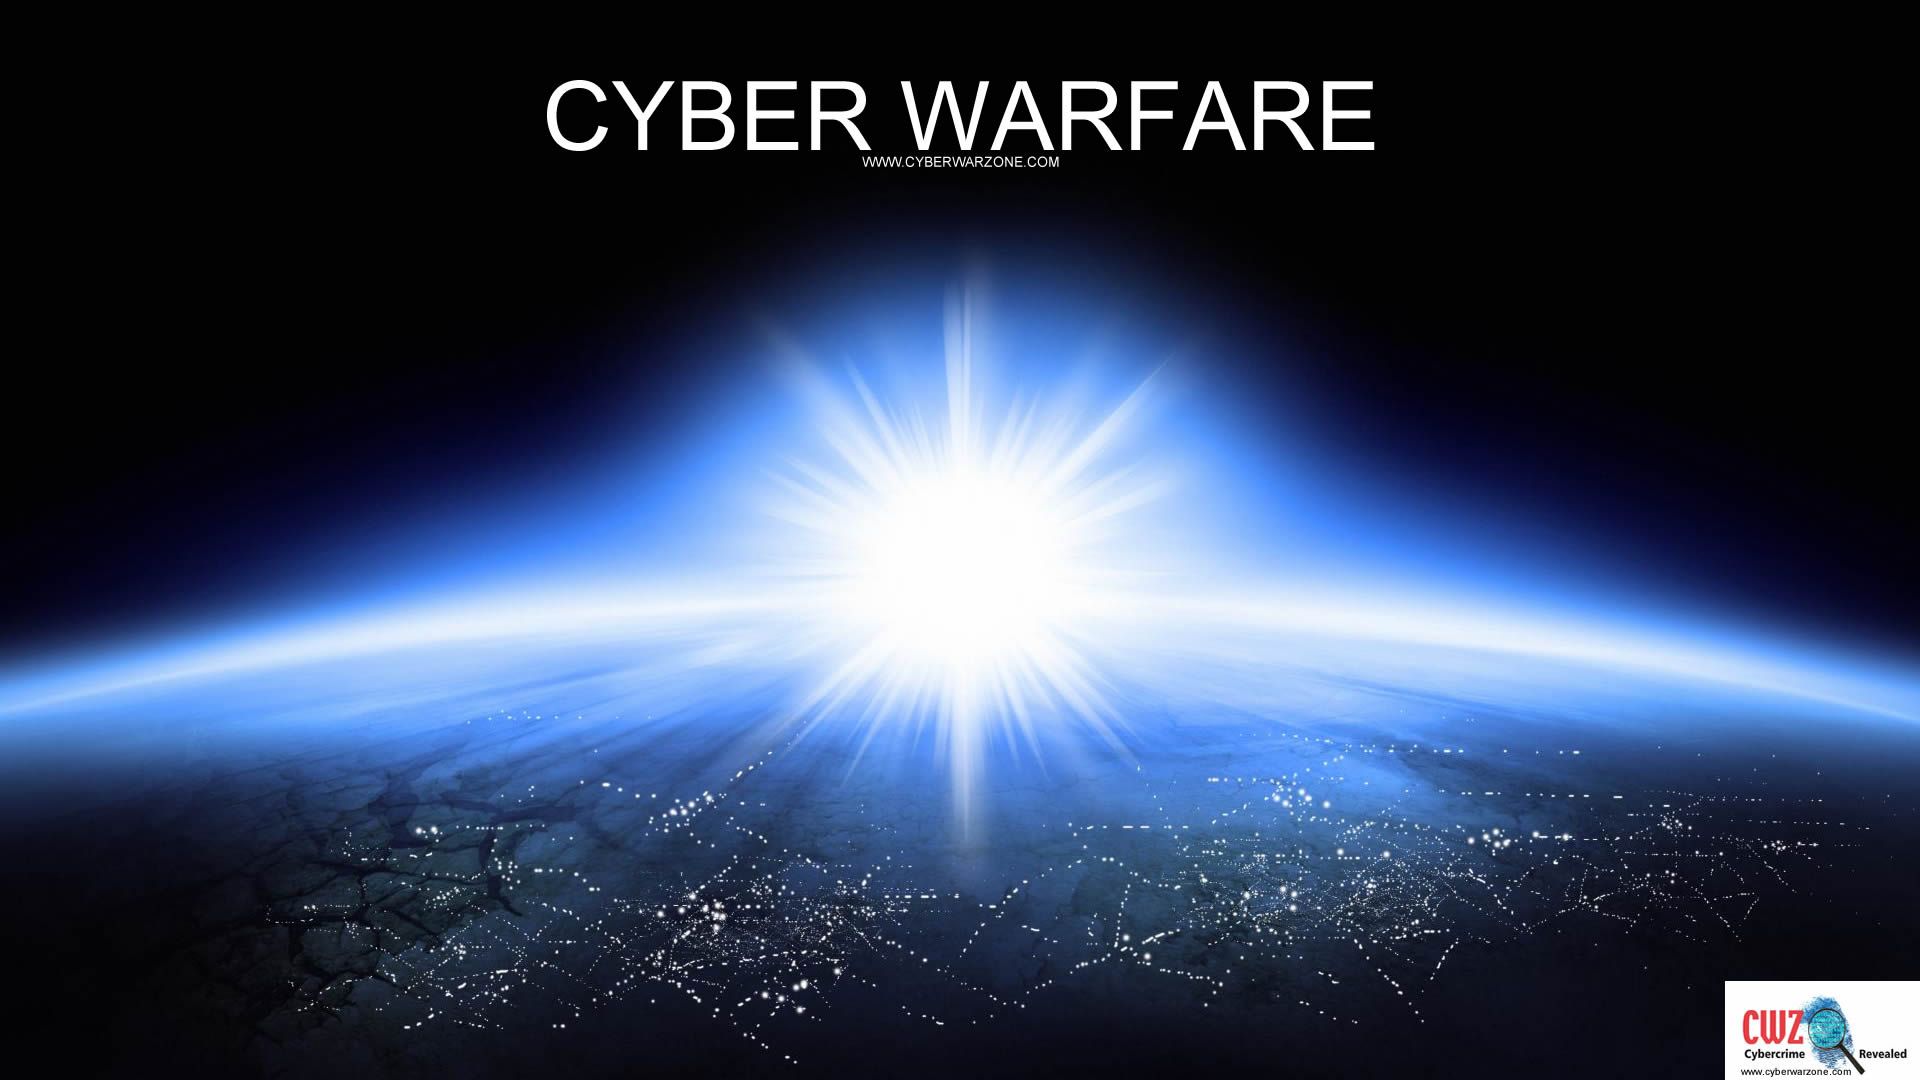 This Is What Cyber Warfare Between Nations Would Look Like